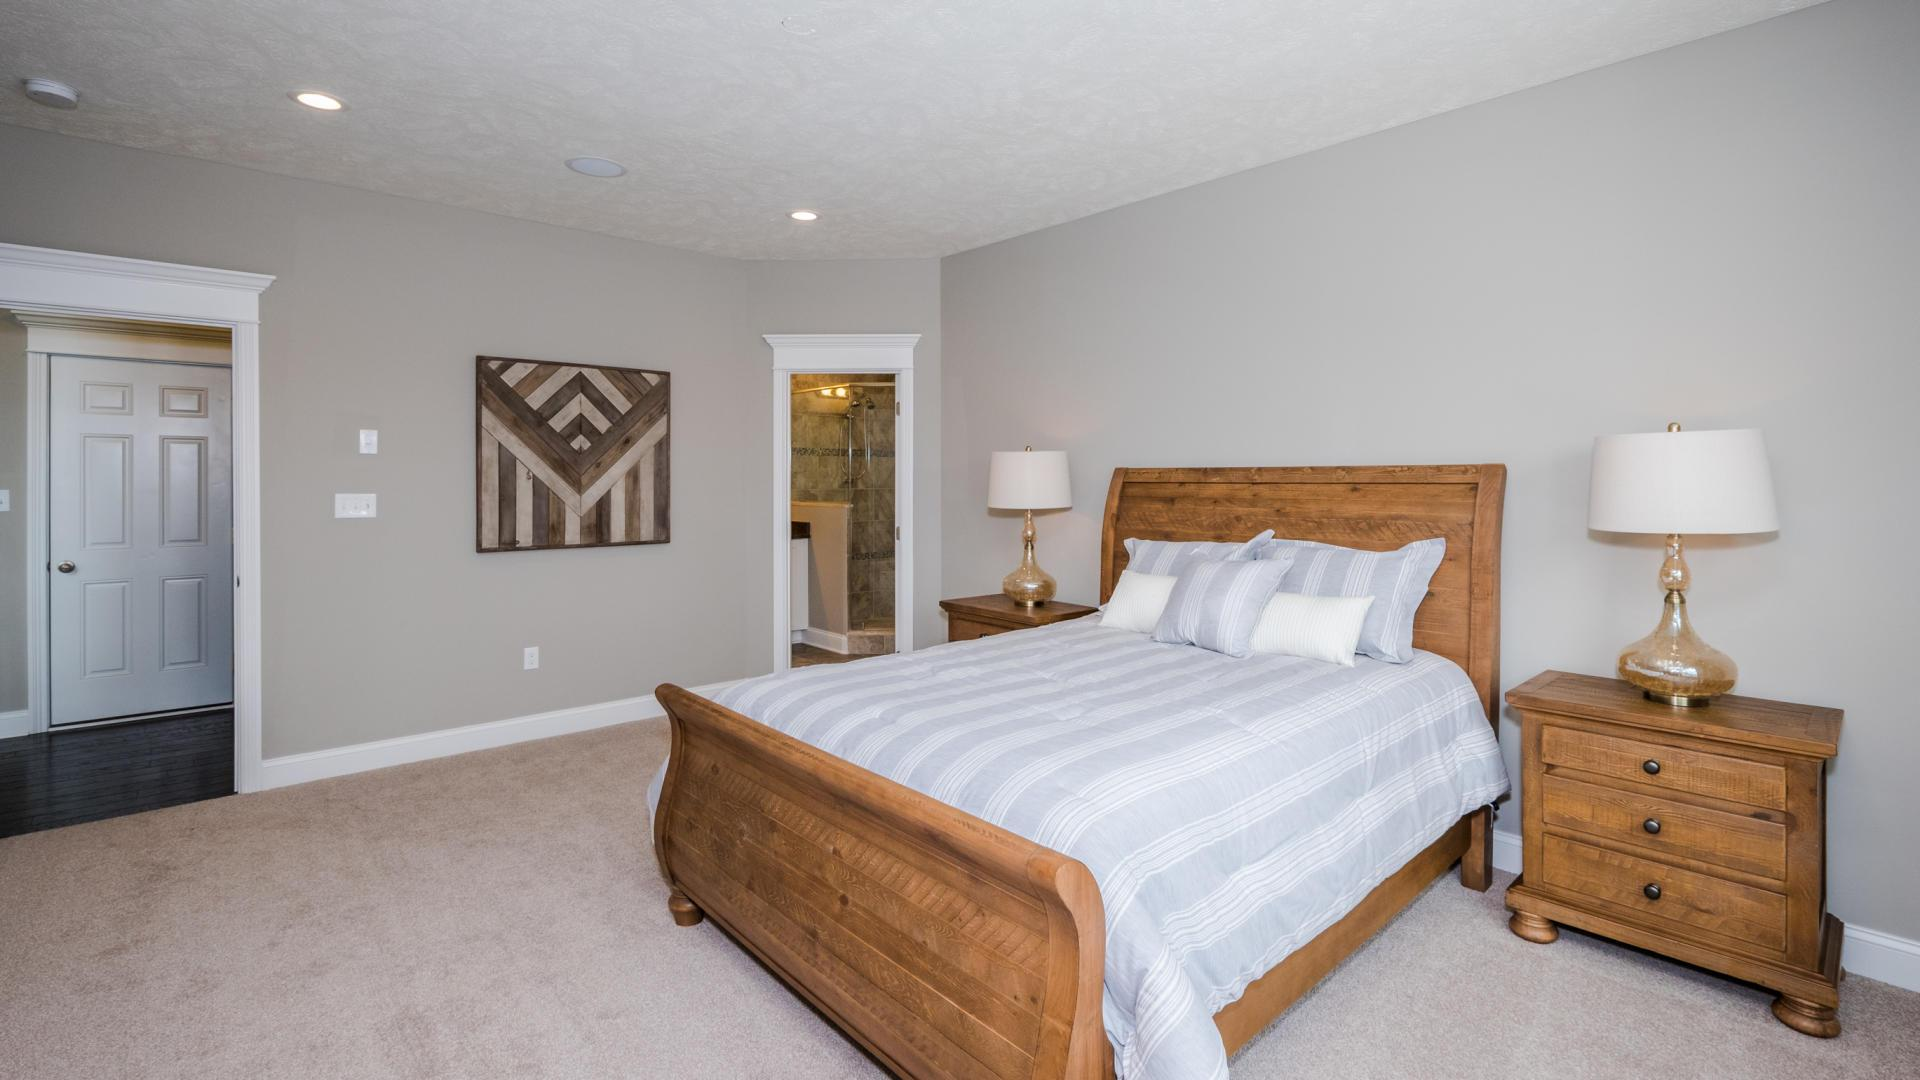 Bedroom featured in the Madison By Maronda Homes in Cincinnati, OH